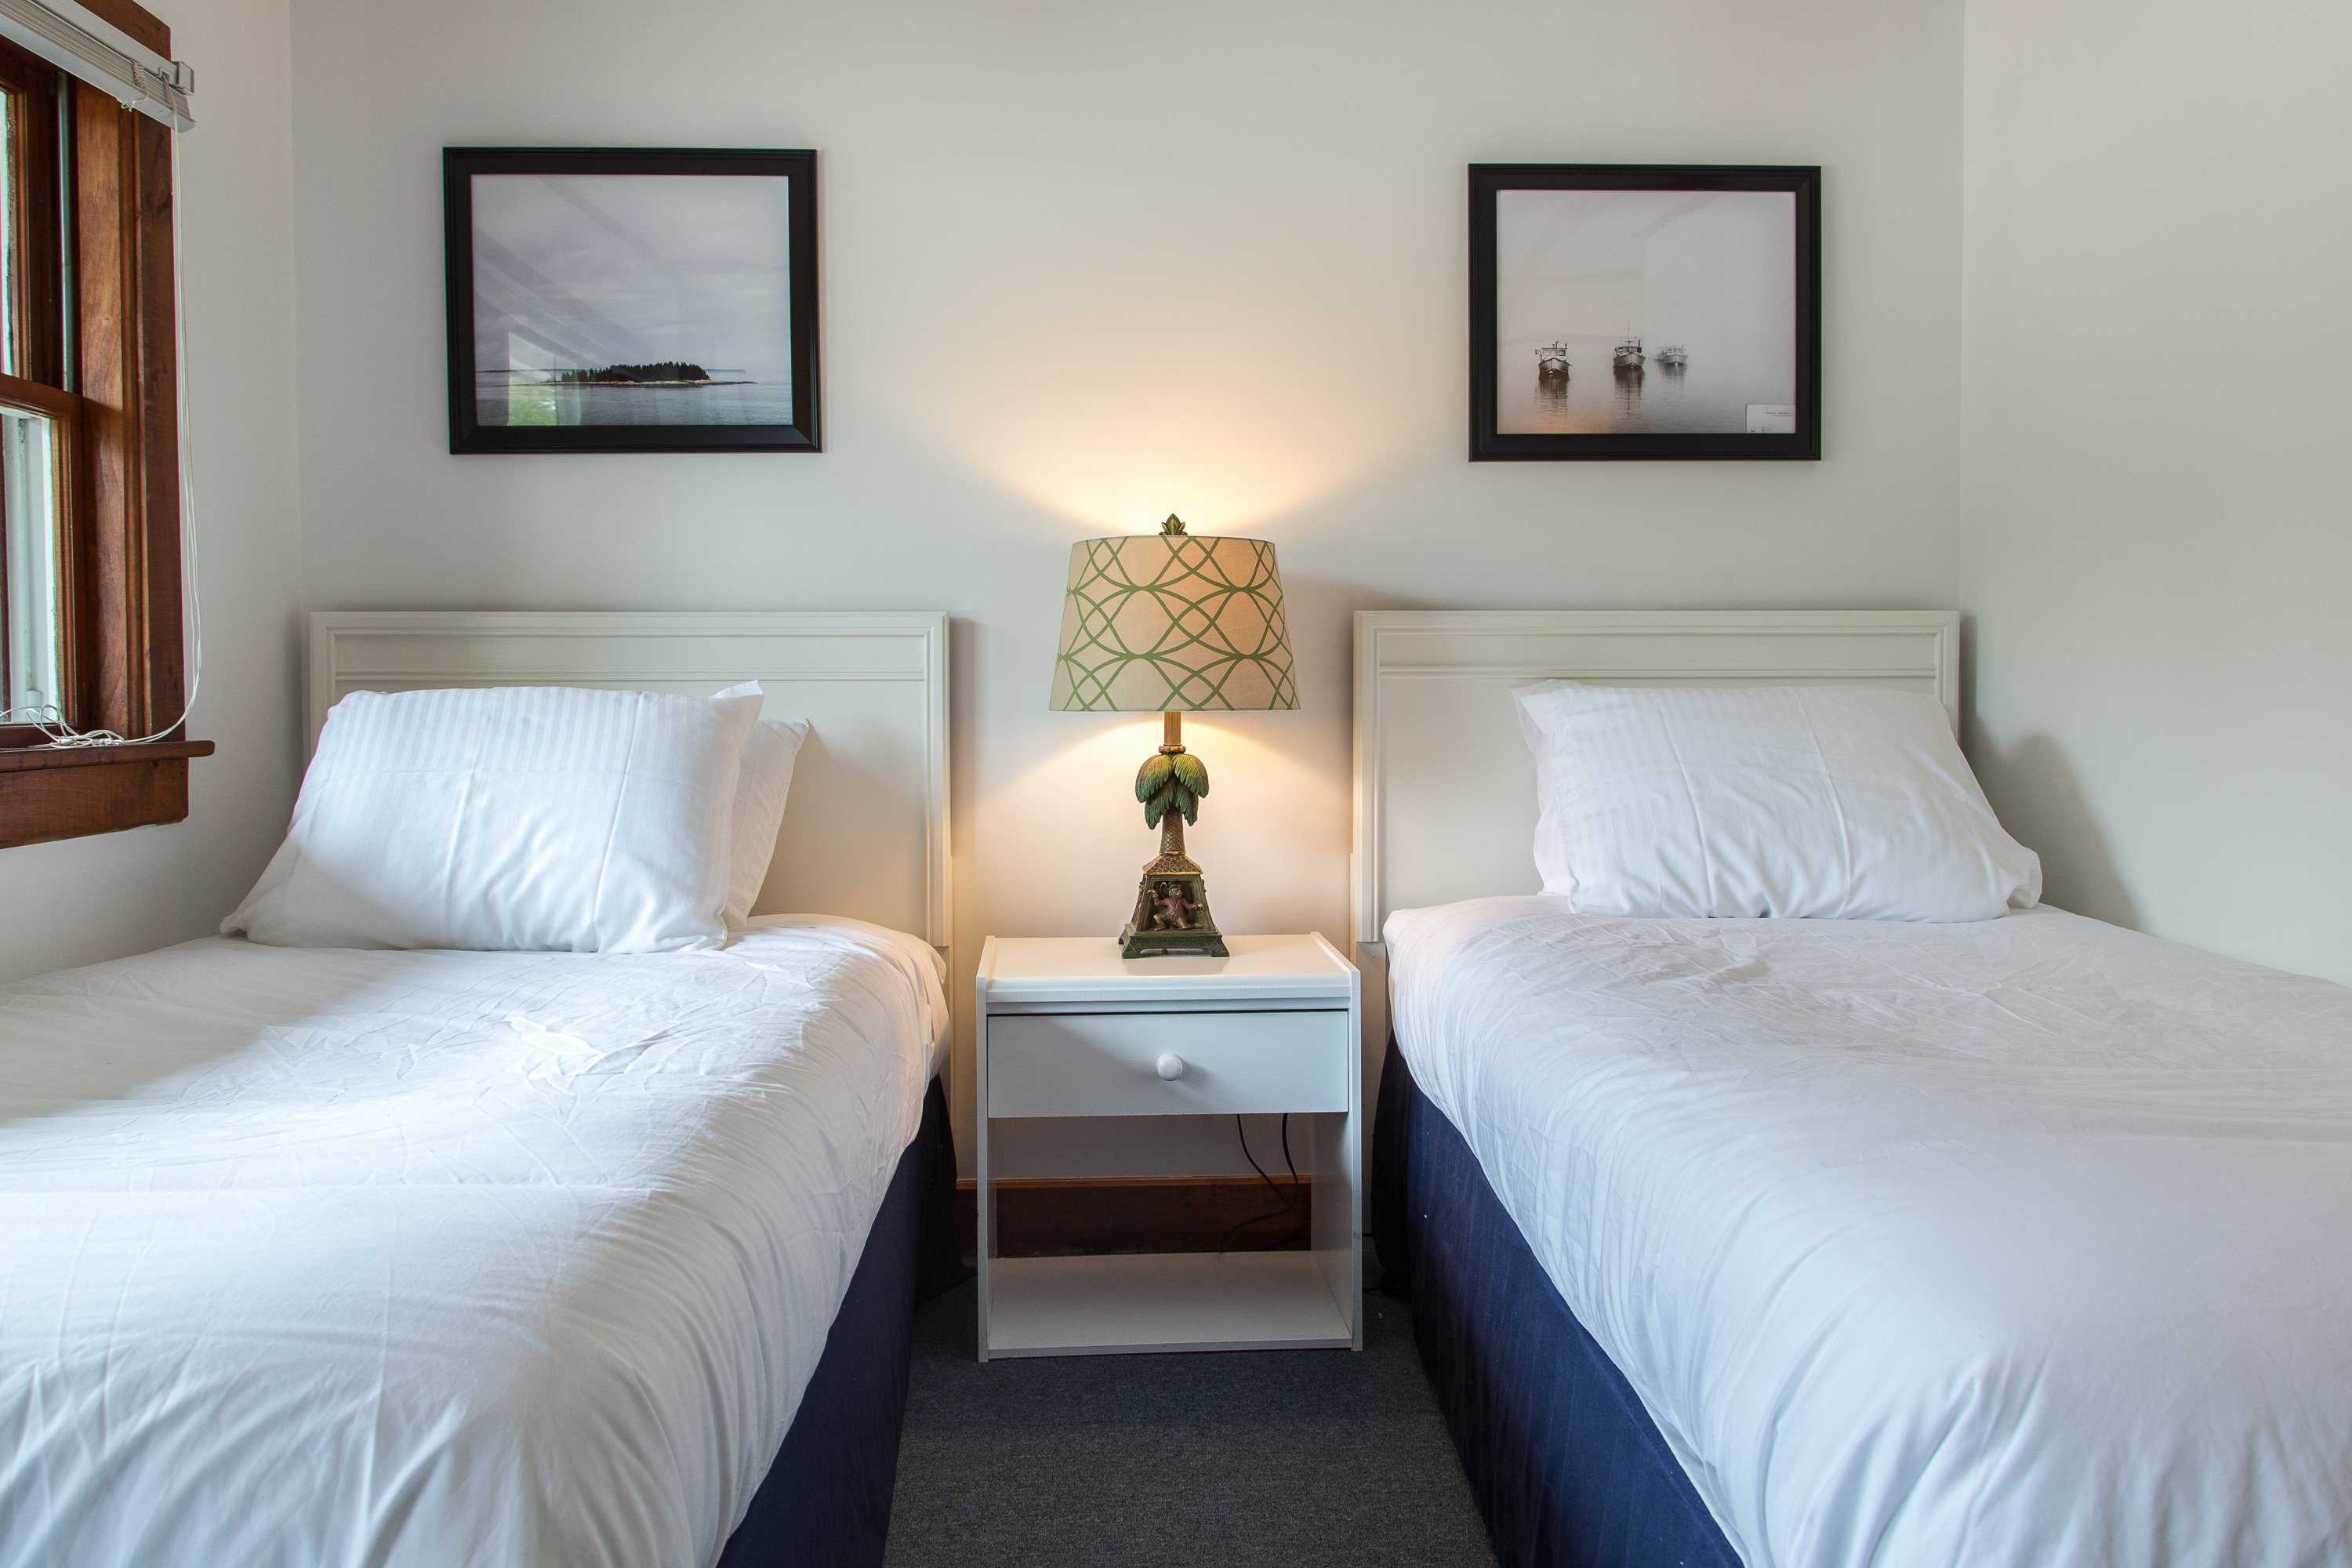 We offer 2 newly decorated twin rooms with a fridge, airconditioning, DirecTV and quality bedding. The duvet is so fluffy you won't want to get out of bed! The room comes with a private bathroom with shower and organic soap.